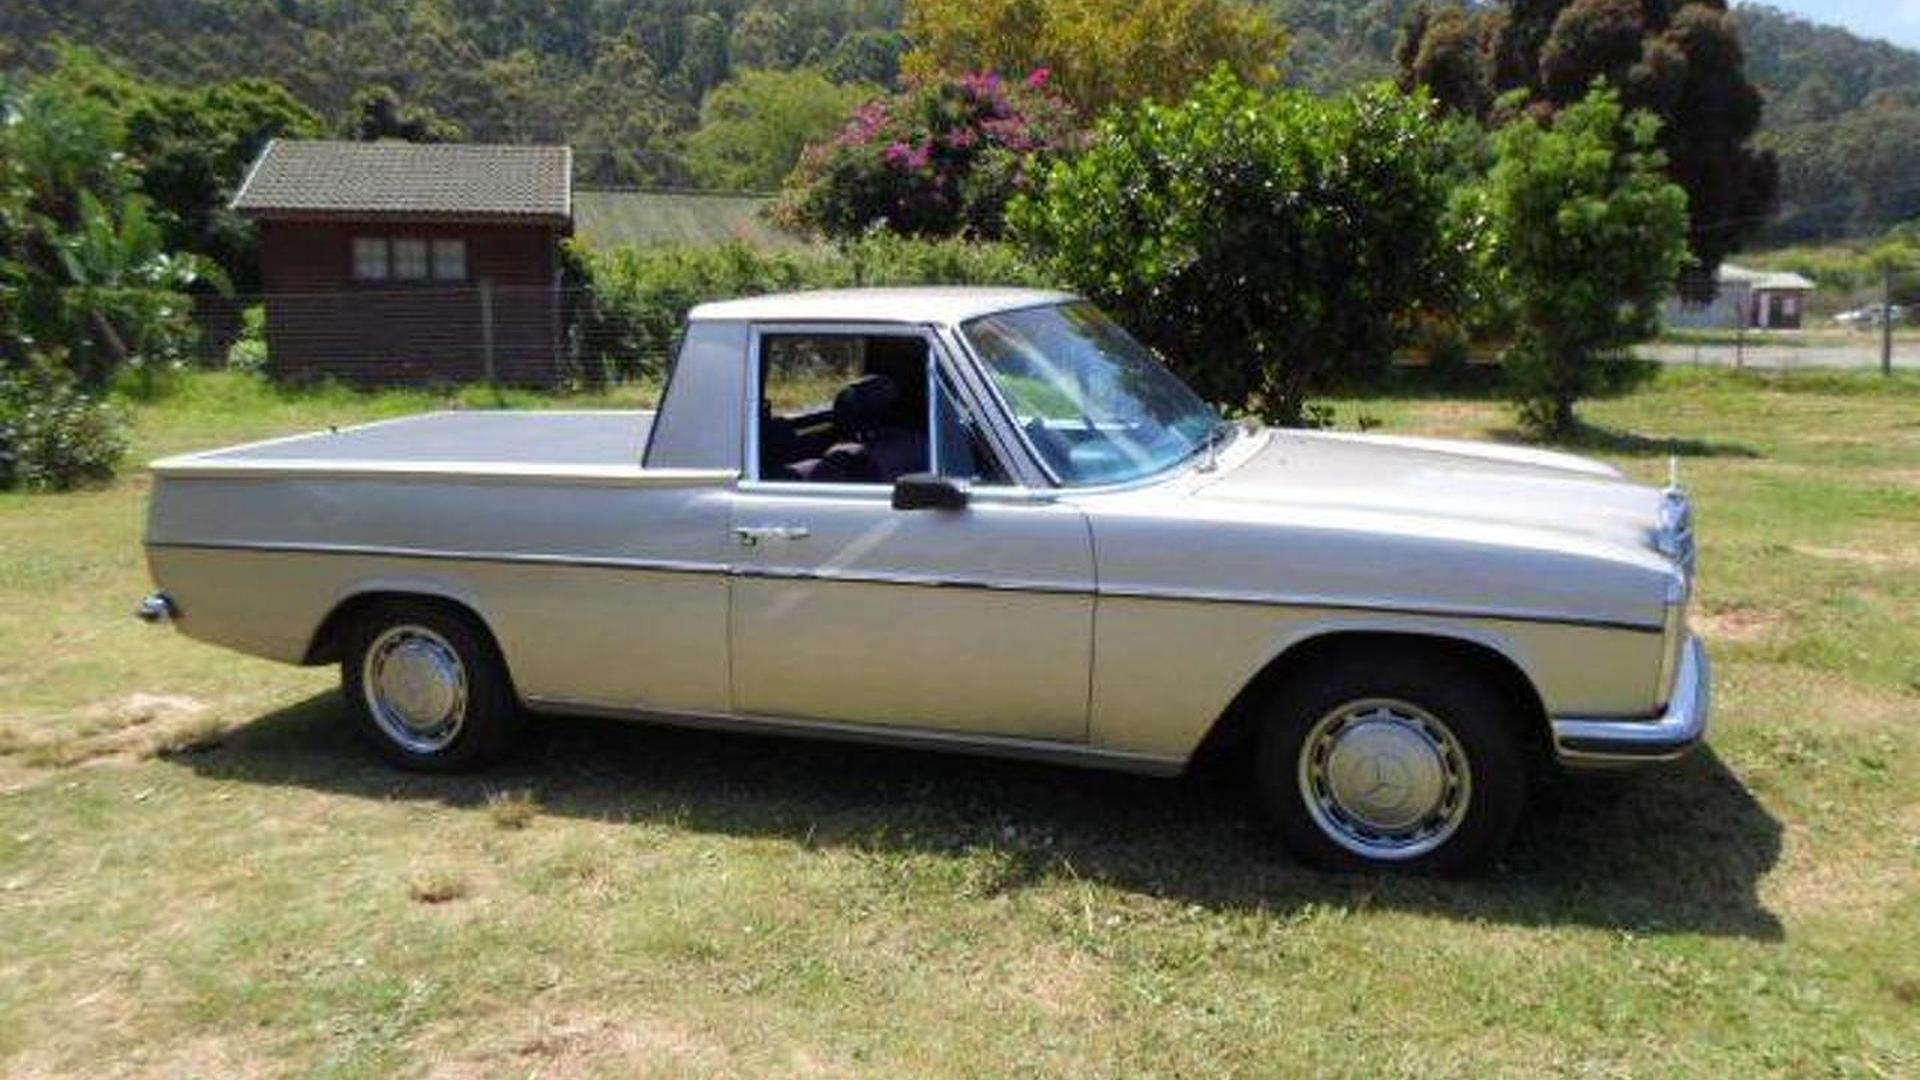 Lexus V8-powered Mercedes 220D pickup listed for $6,850